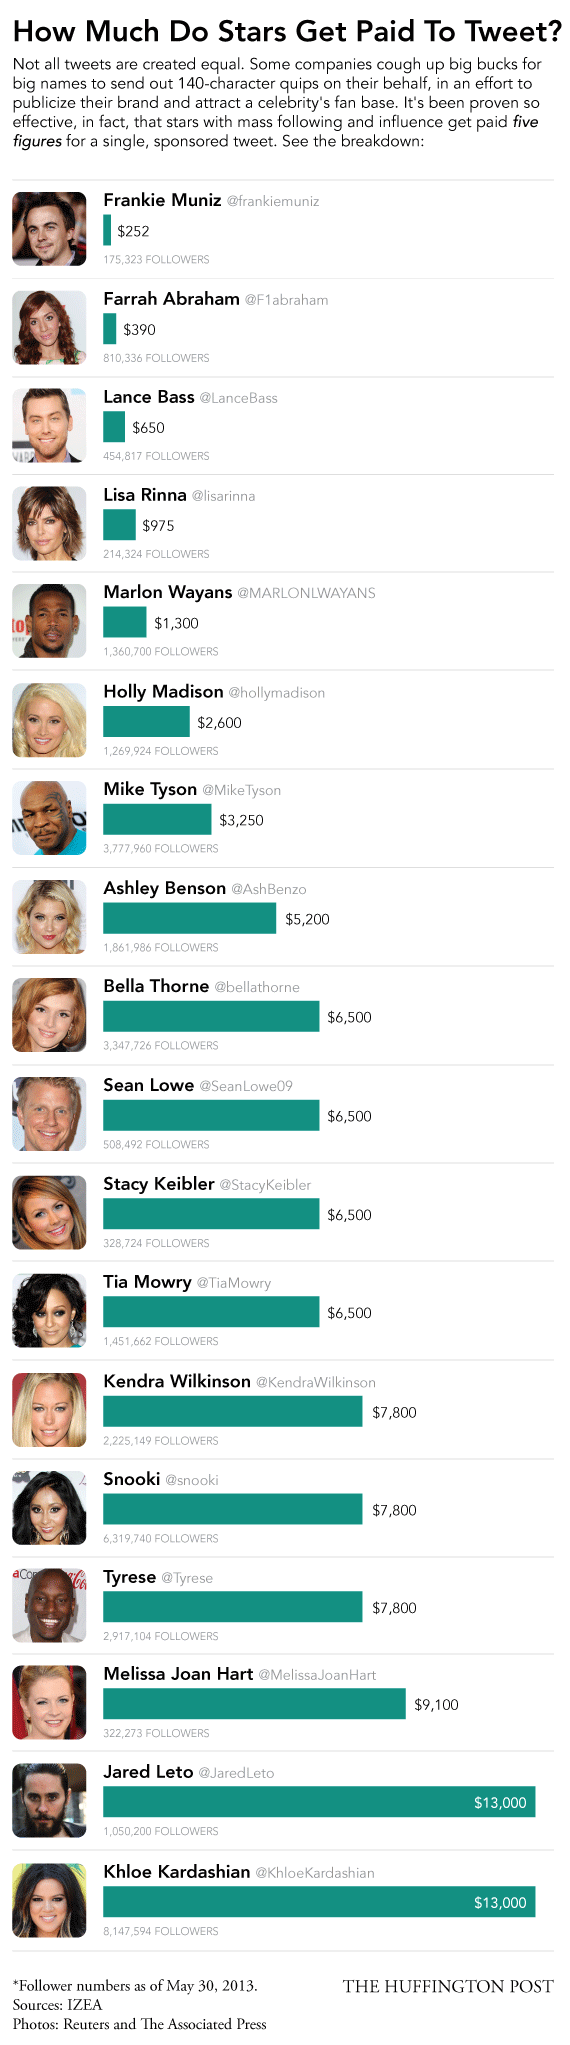 How Much 18 Different Celebrities Get Paid To Tweet